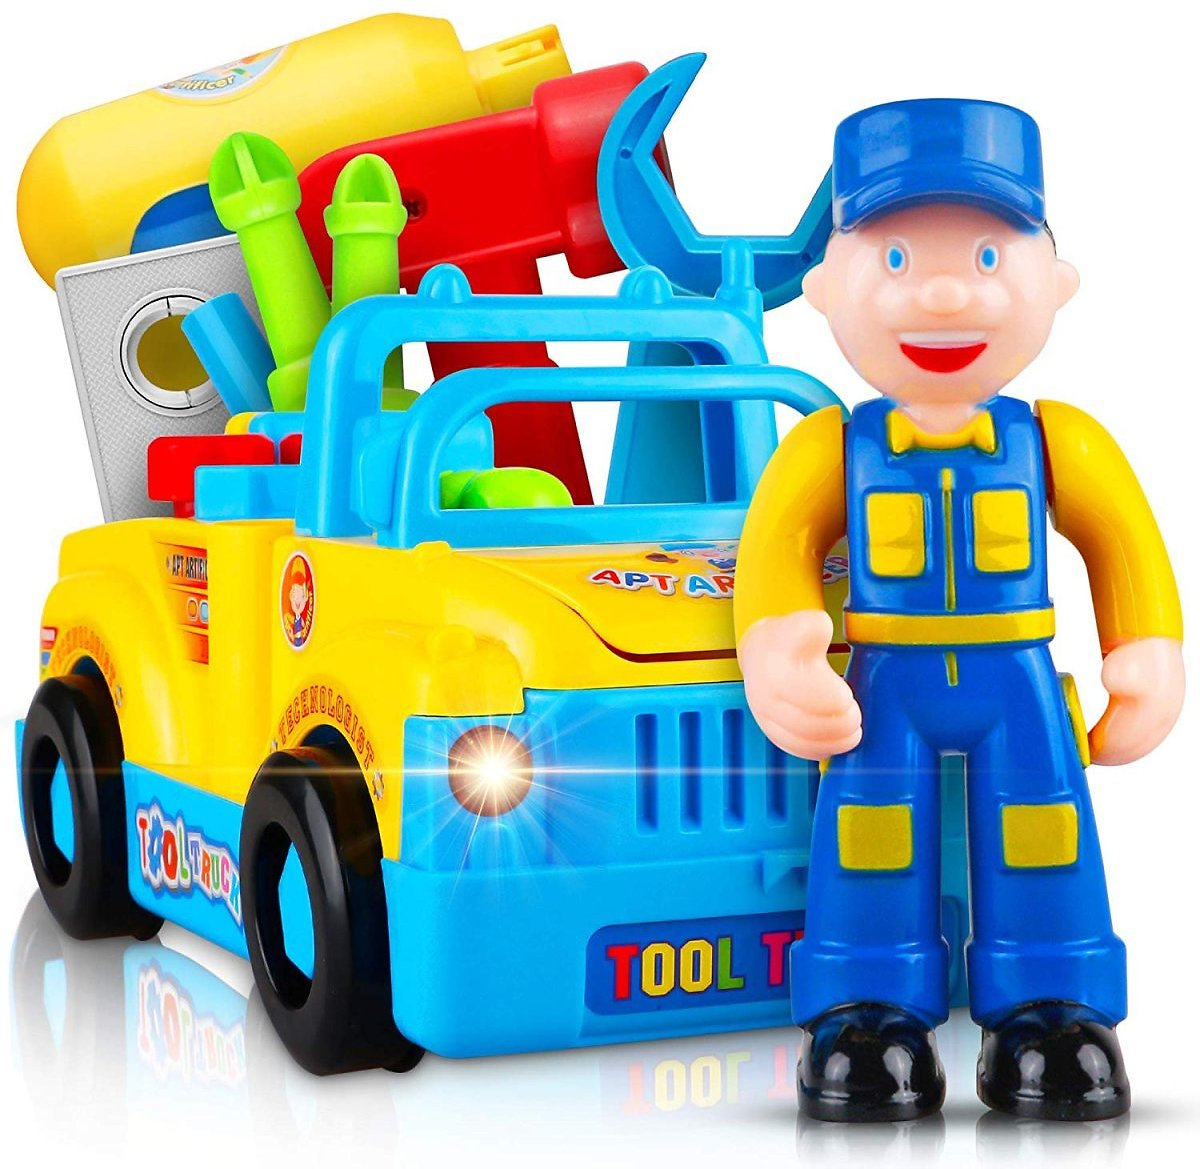 Take Apart Truck Learning Toys for 3 Year Old Boys & Girls- Vehicle Playset with Lights, Sounds, Drill and Tools for Kids